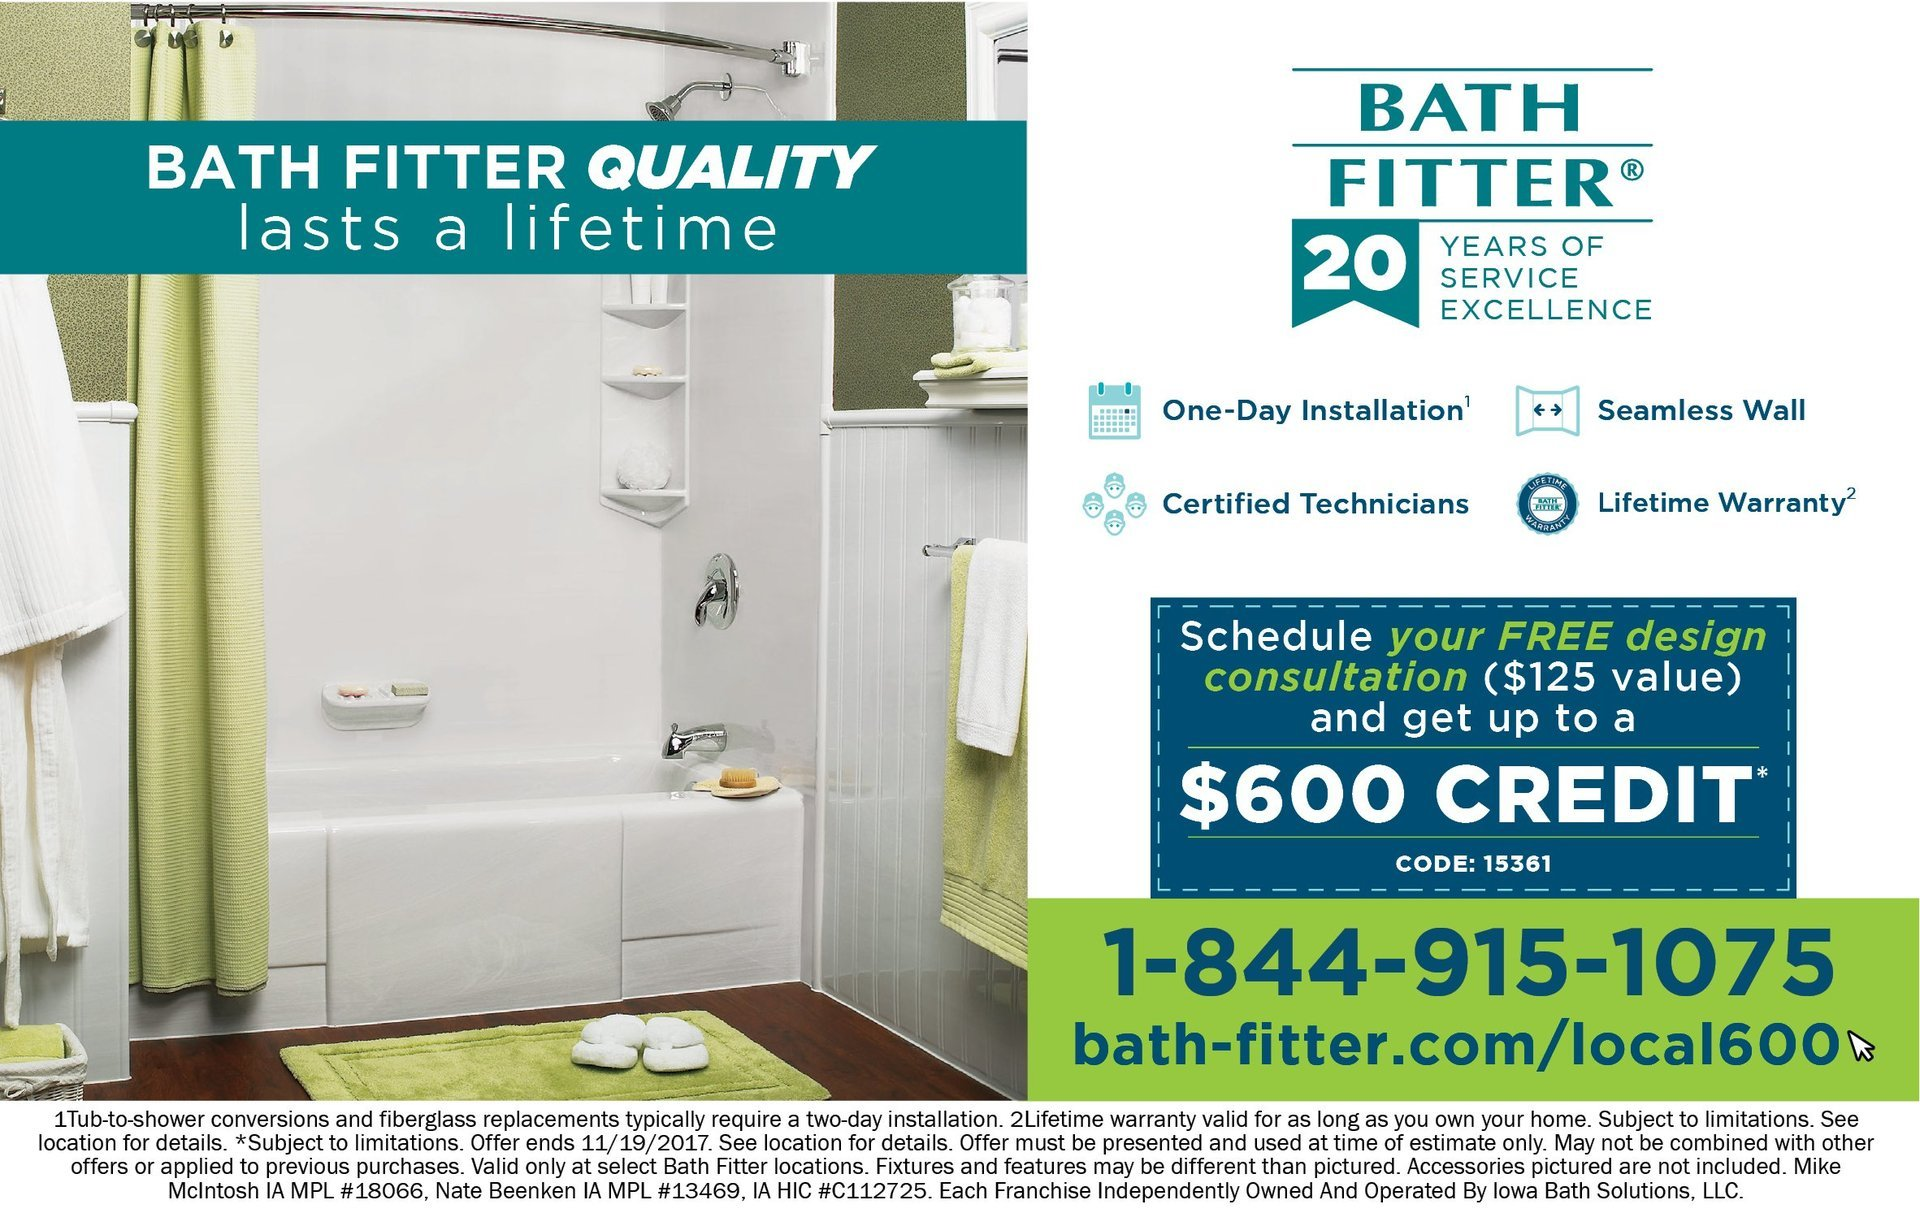 Bath Fitter one day installation, seamless wall, quality that lasts a lifetime 600 coupons Morton, IL